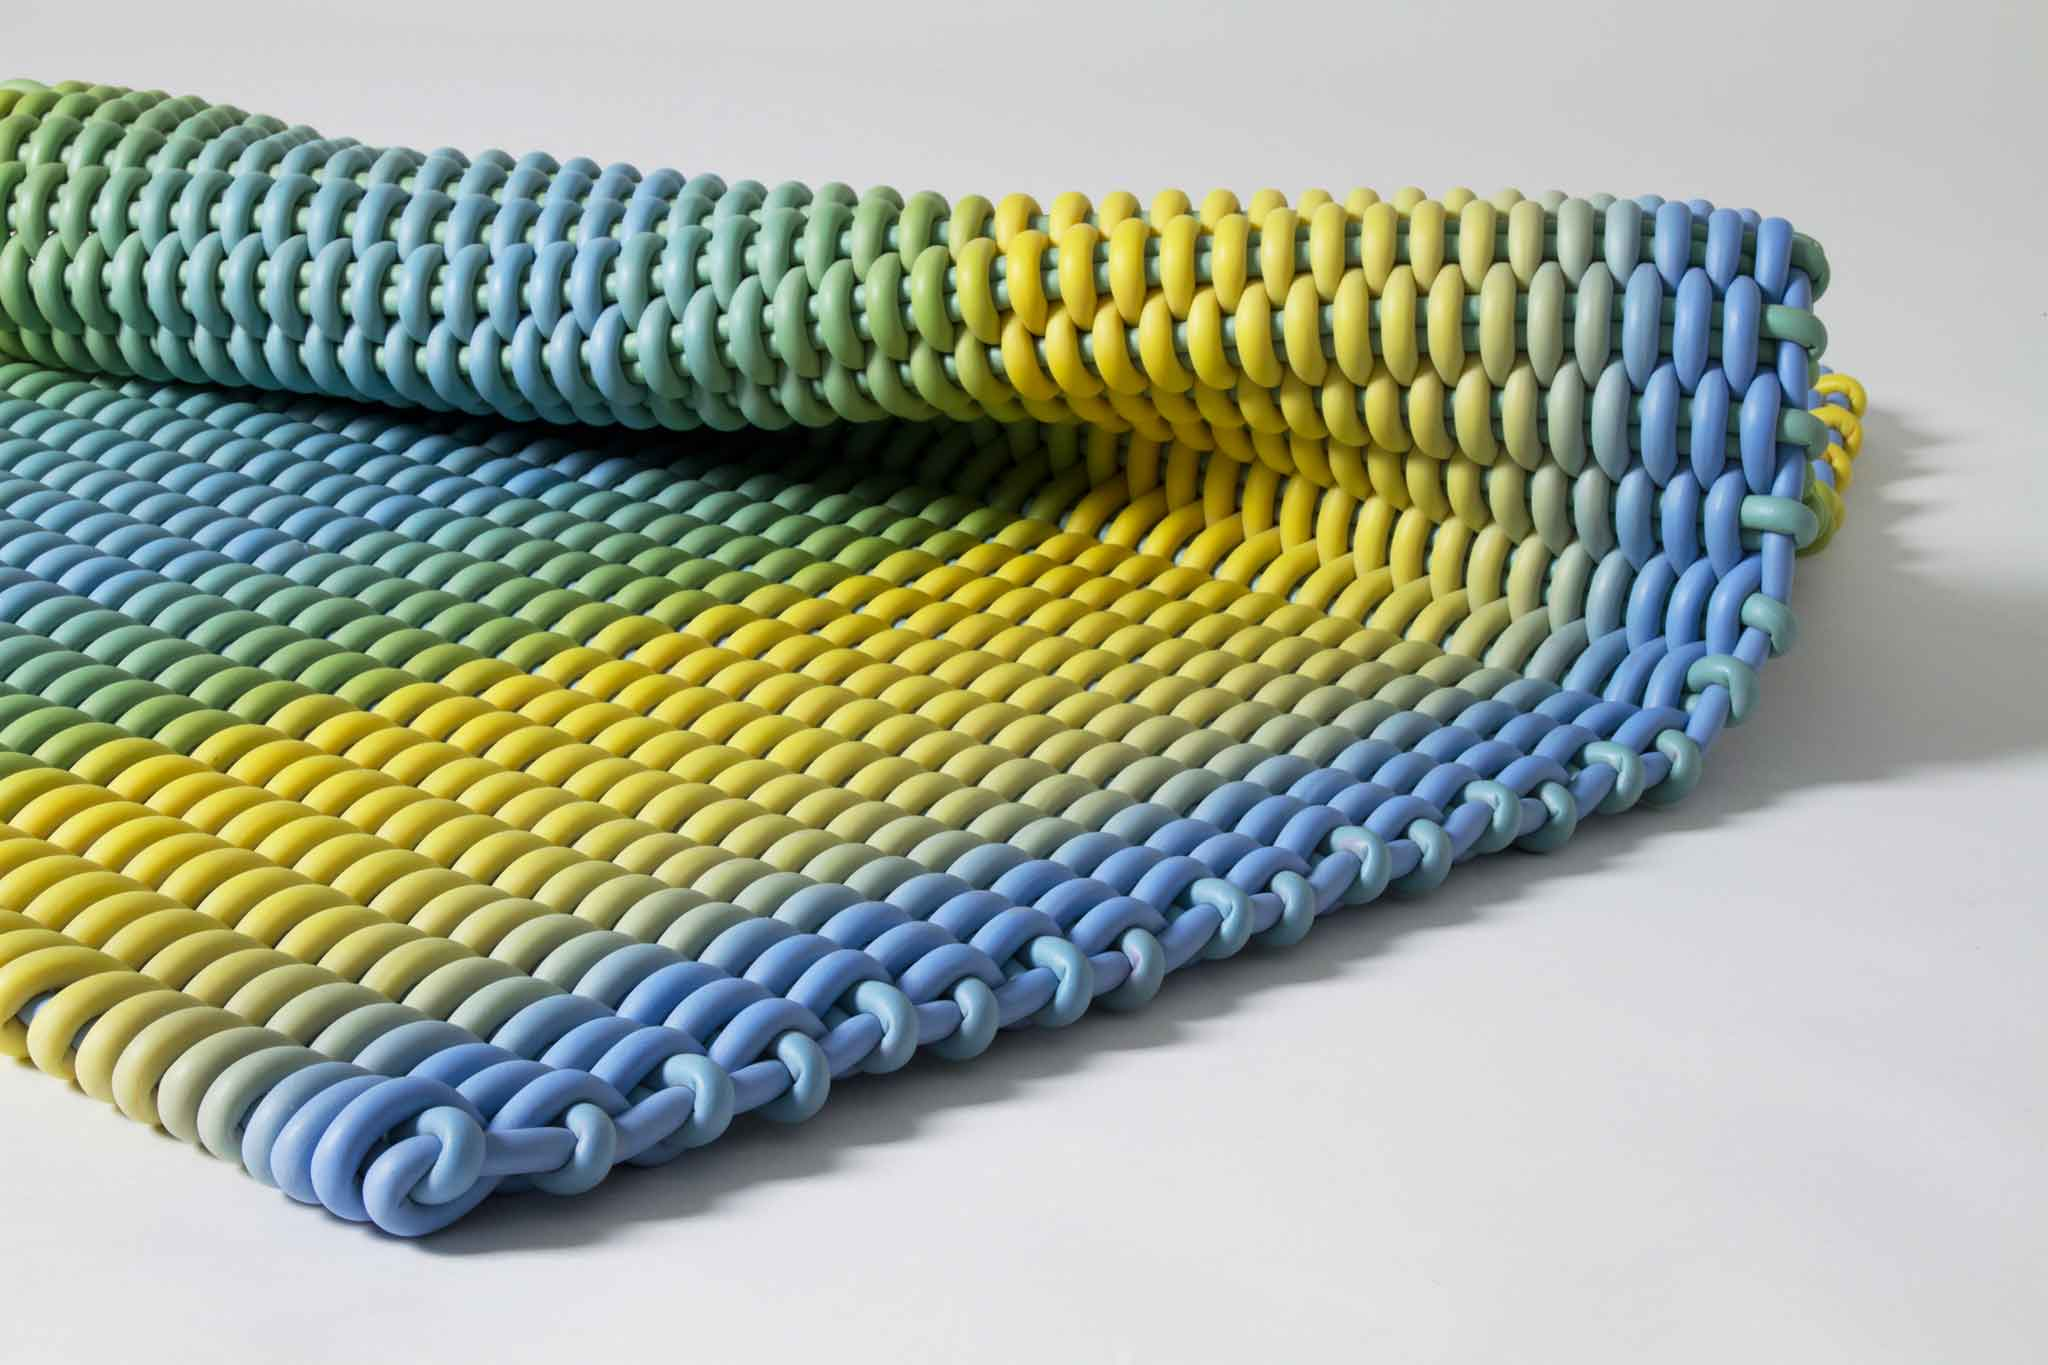 'Lemon Grass' plain weave Silicone Cord by Shore Rugs | Image courtesy of Shore Rugs